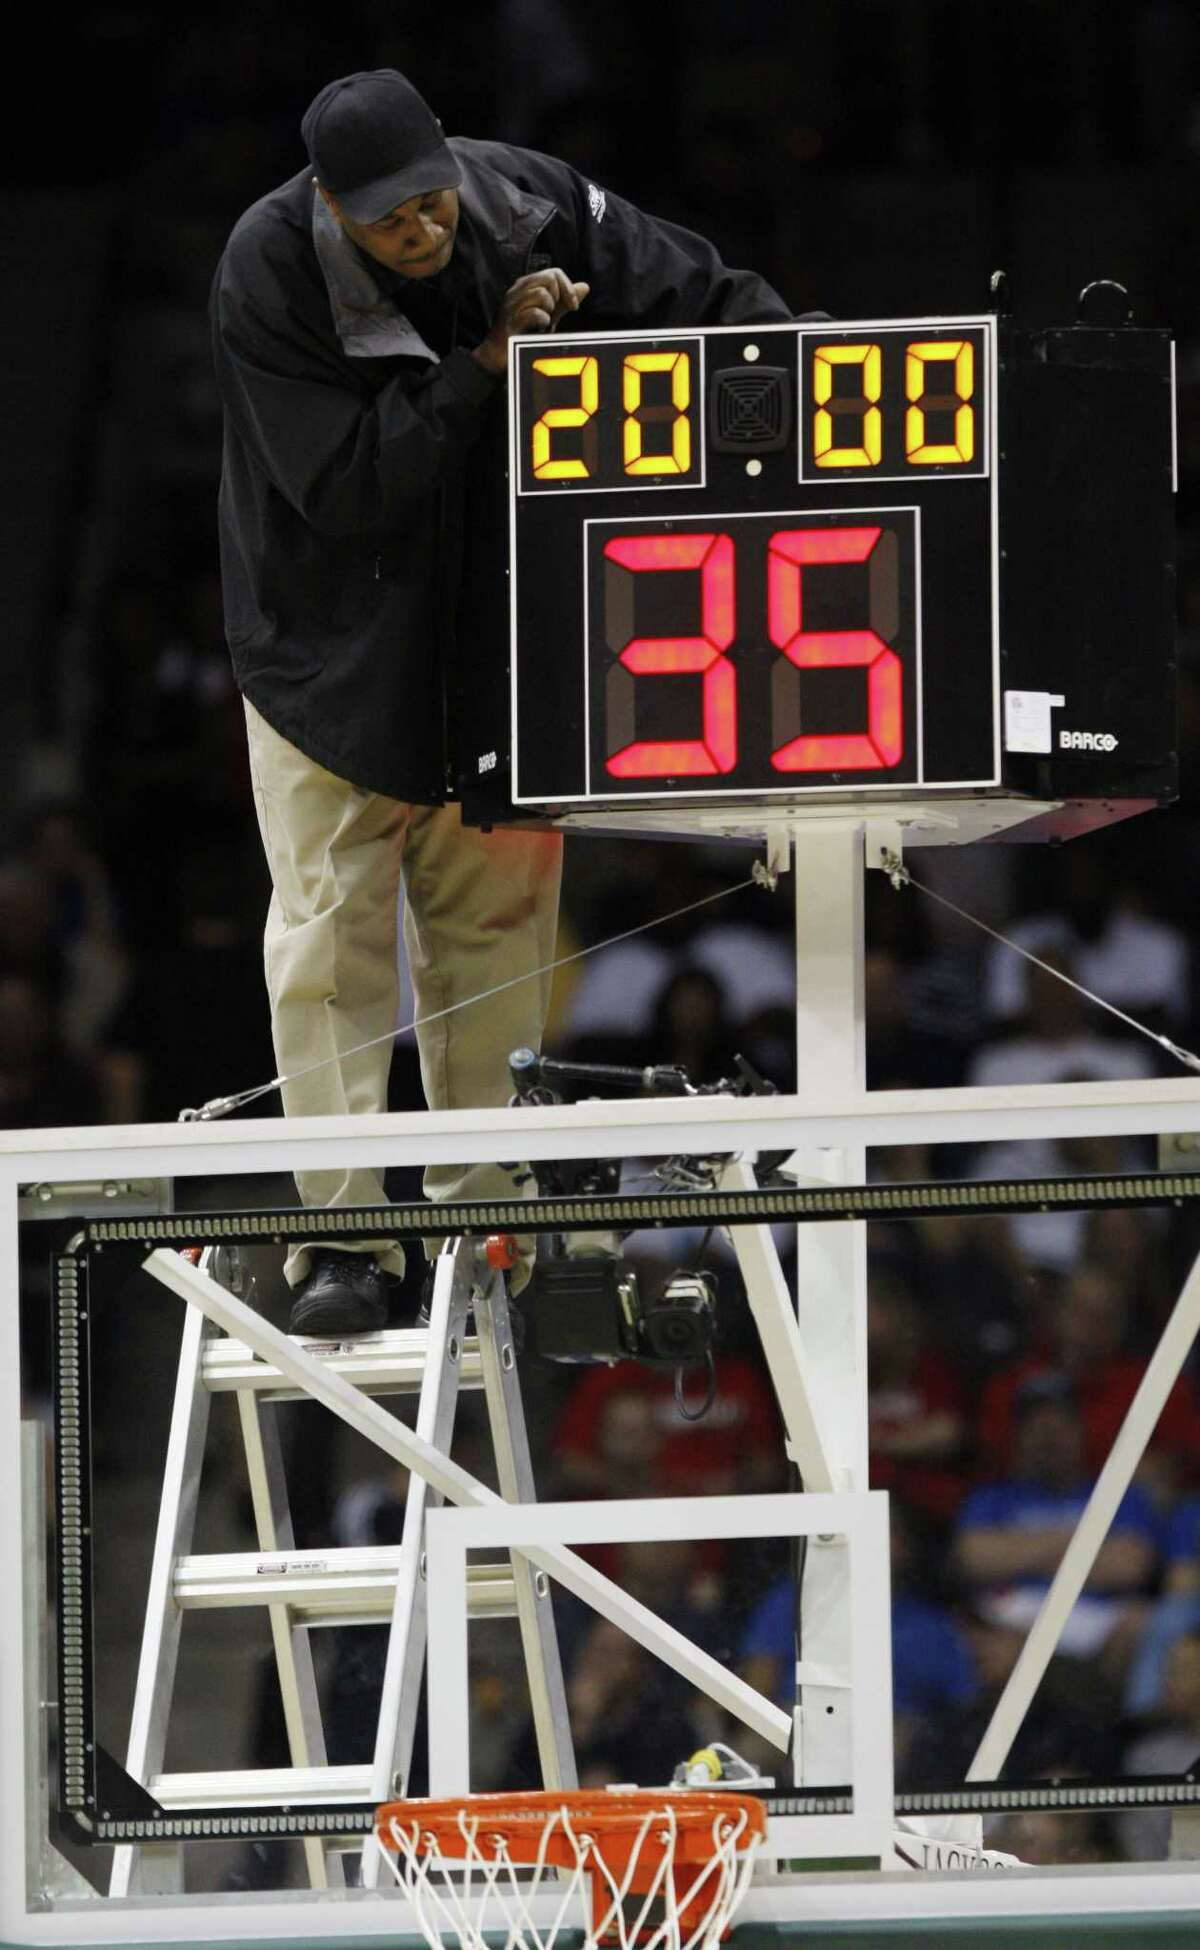 The NCAA's Playing Rules Oversight Panel officially approved that men's college basketball teams will play with a 30-second shot clock and fewer timeouts next season.